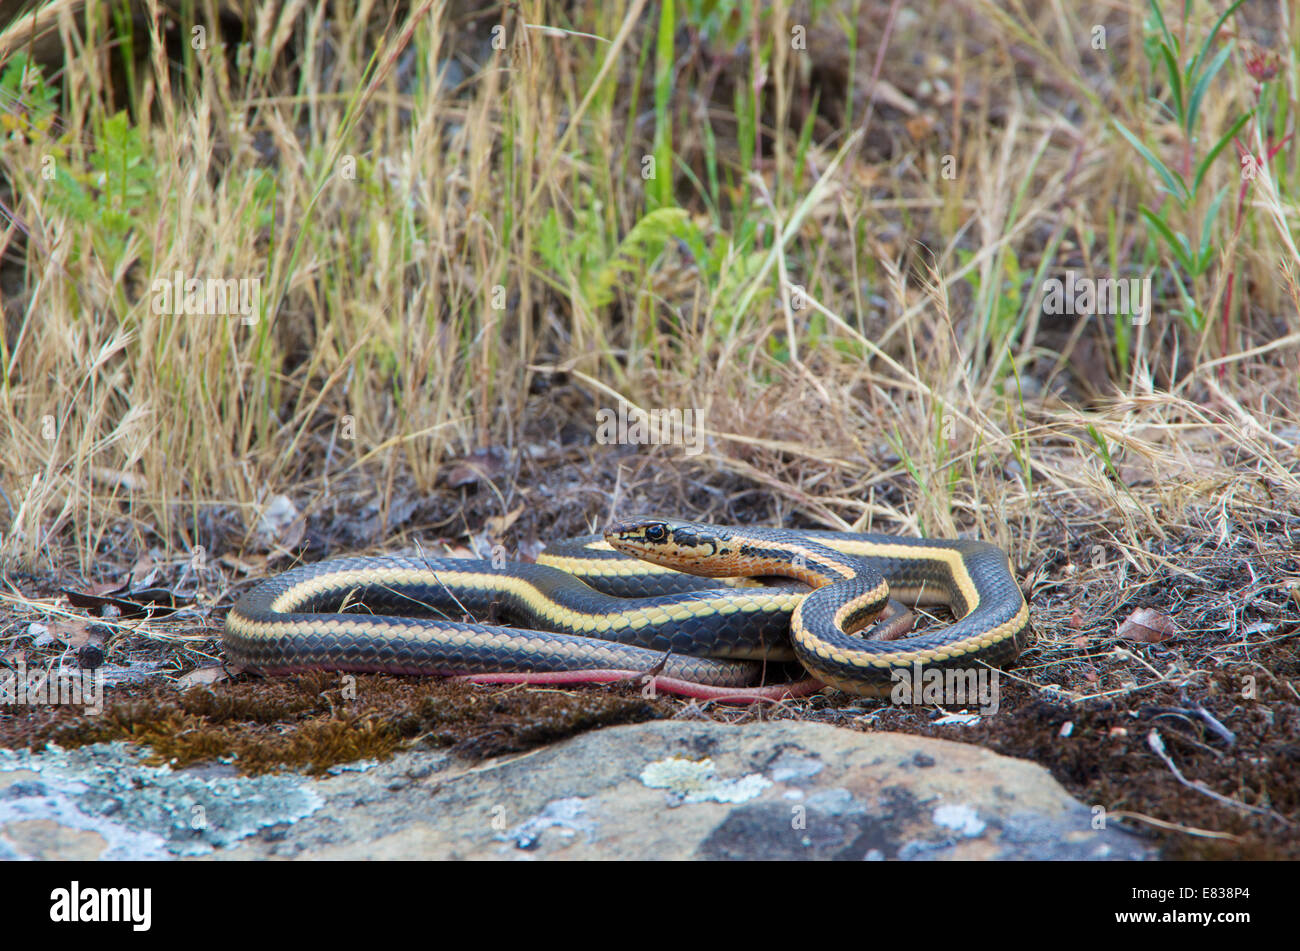 An Alameda Striped Racer (Coluber lateralis euryxanthus), a California subspecies threatened due to habitat loss. - Stock Image